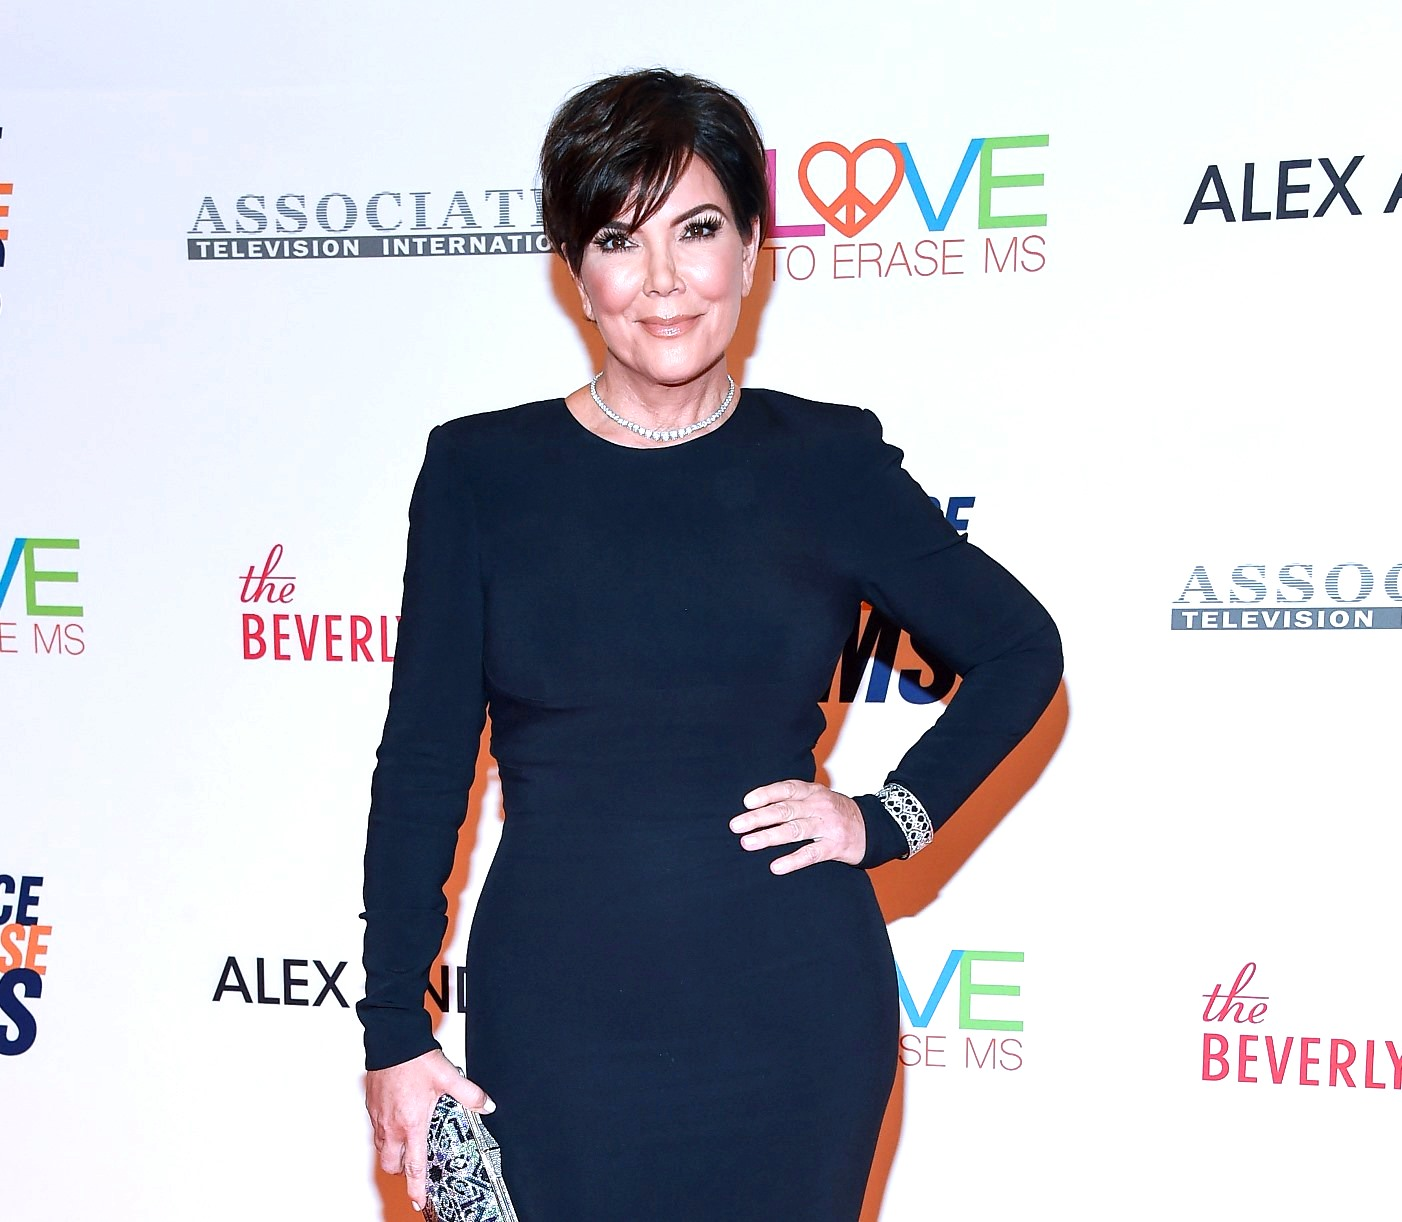 Kris Jenner accused in complaint by the Bodyguard of sexual assault and the specifics of alleged misconduct as claimed by Kris Denies